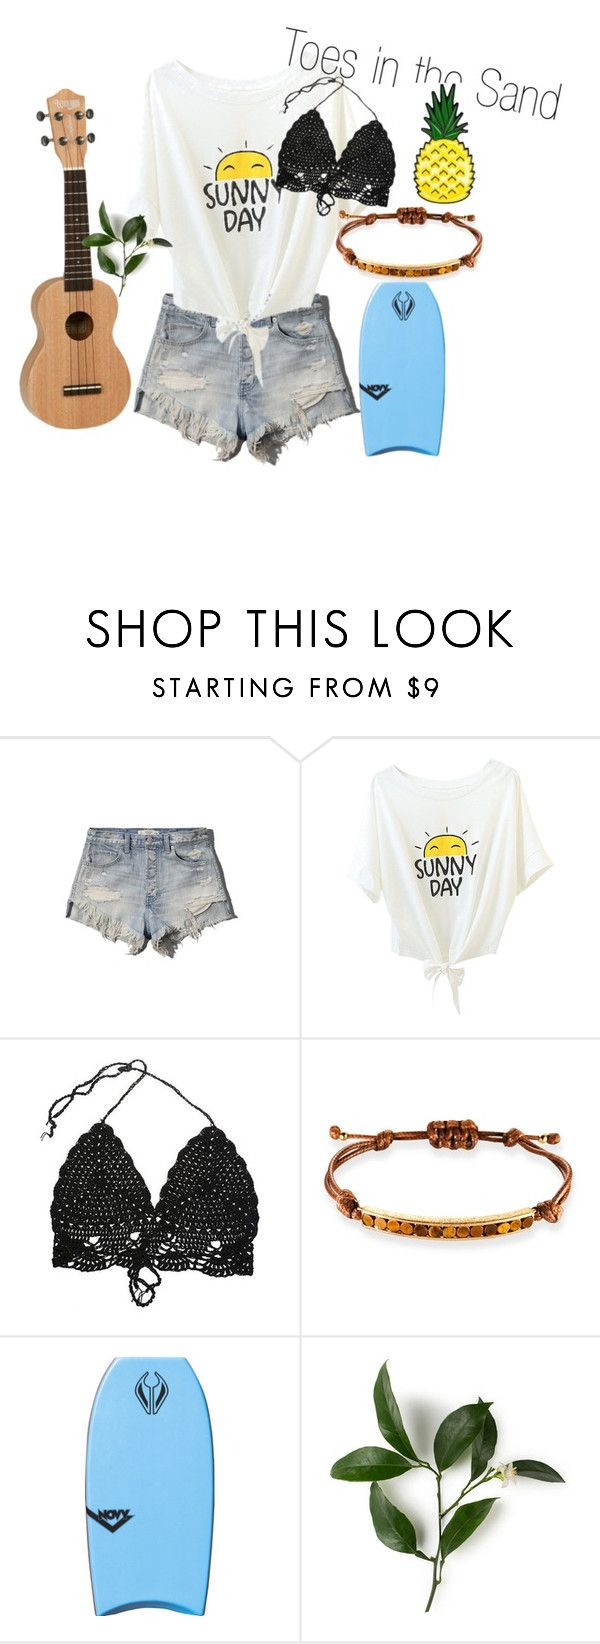 Beach Bum by gbdoodlebug on Polyvore featuring Abercrombie & Fitch, Ona Chan, women's clothing, women's fashion, women, female, woman, misses and juniors